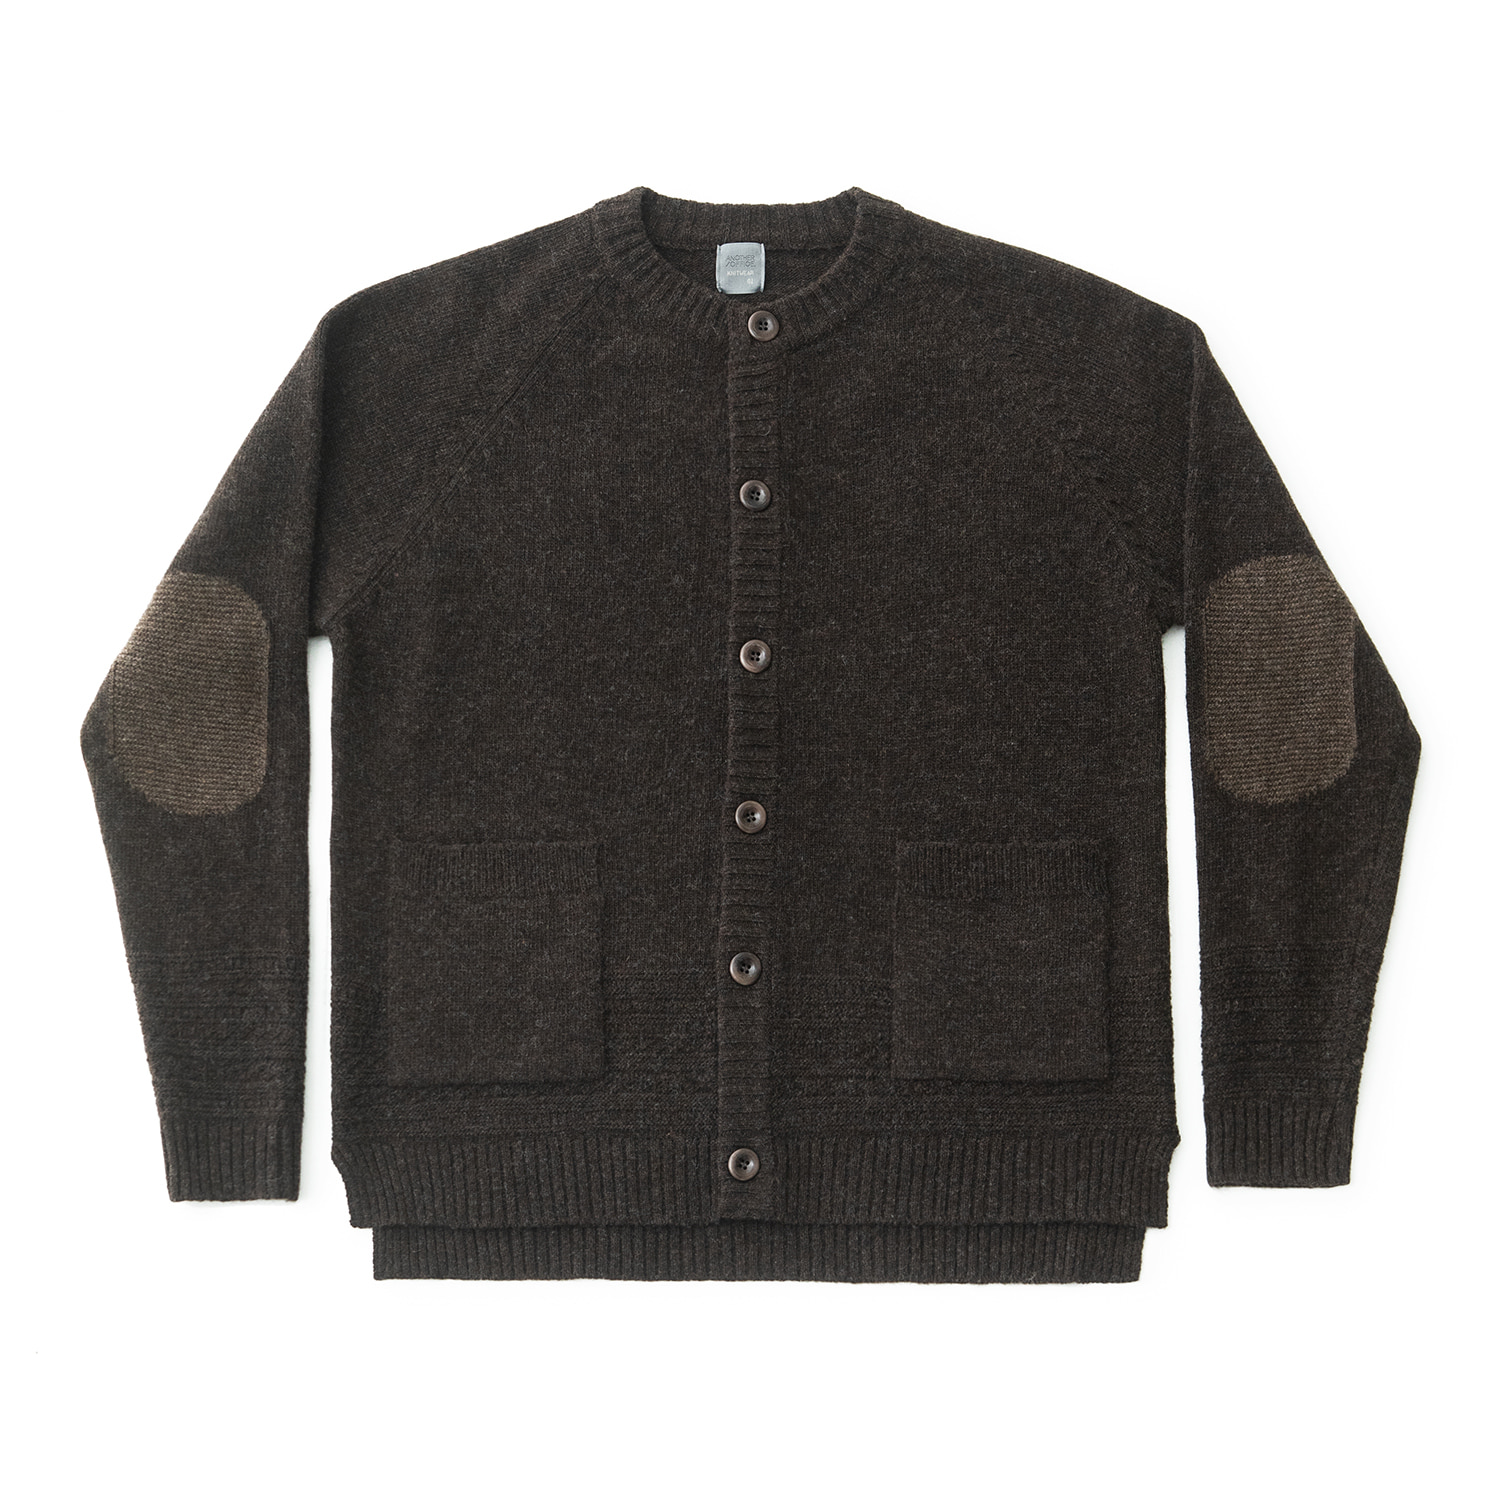 Gentle Links Cardigan (Dark Brown)